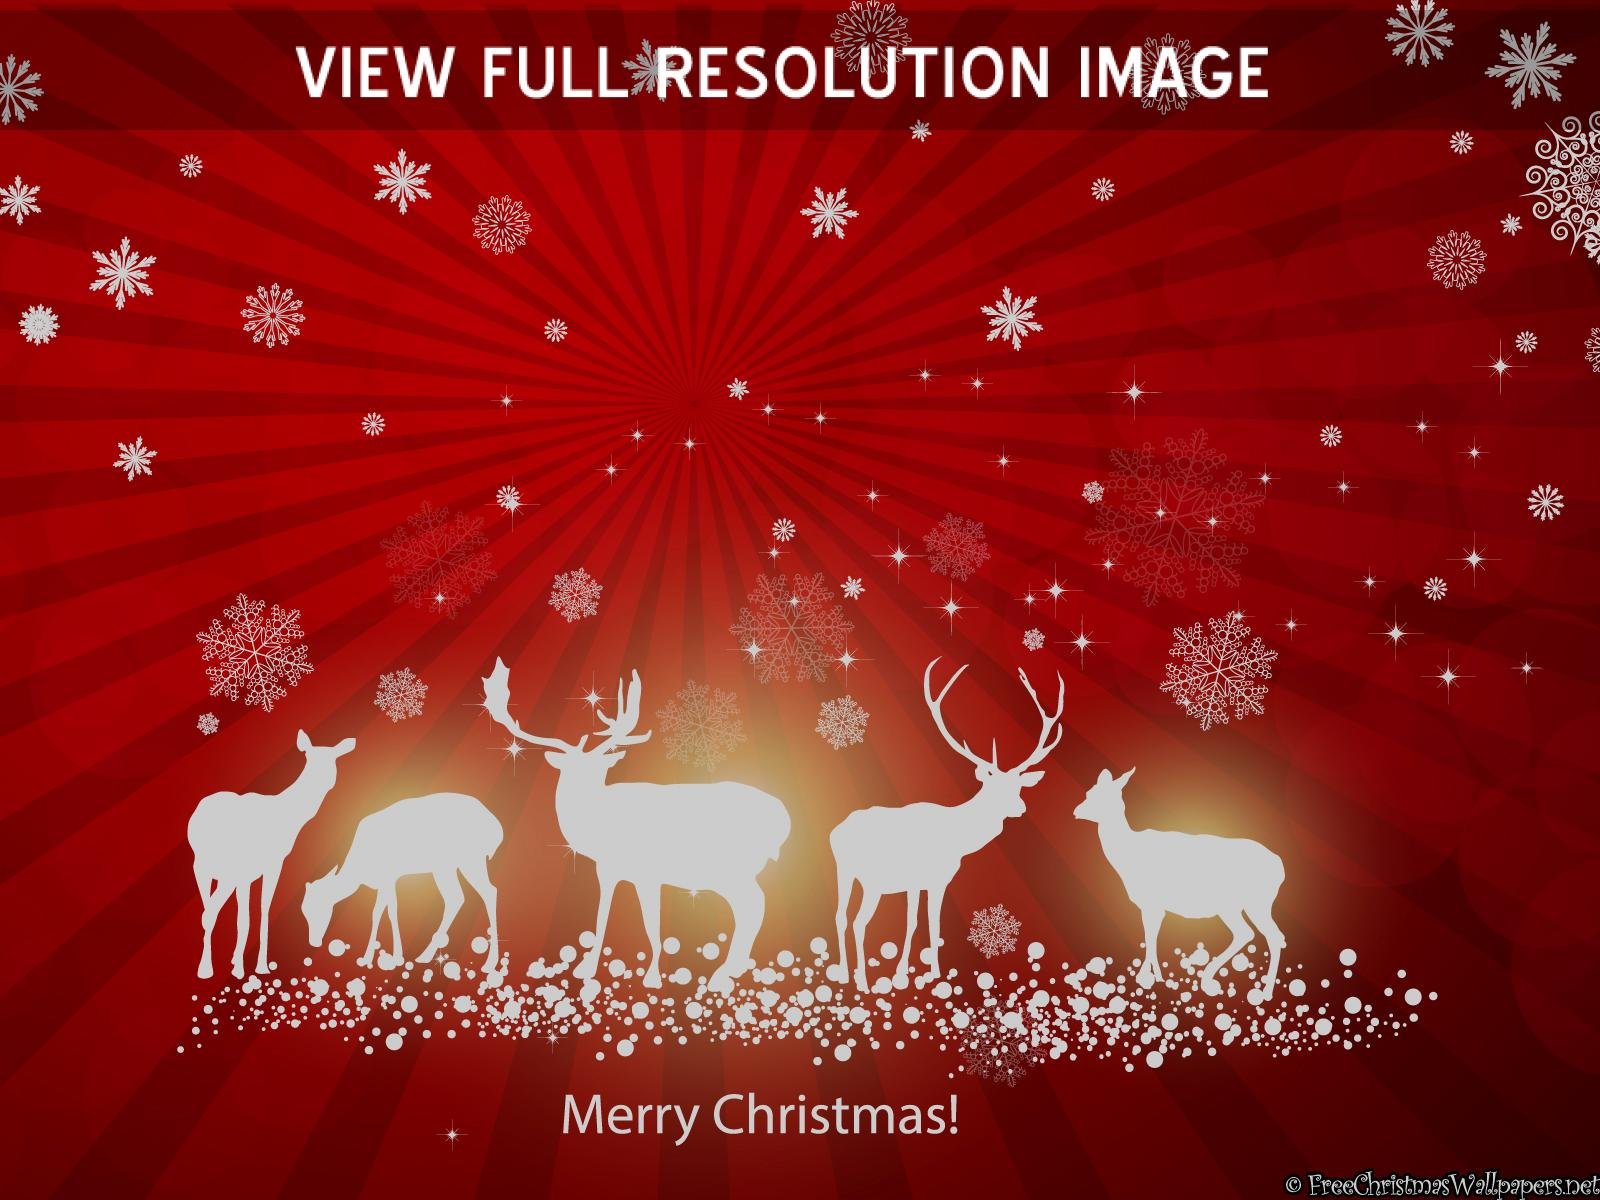 Country Merry Christmas 191815 wallpapers55com   Best Wallpapers 1600x1200